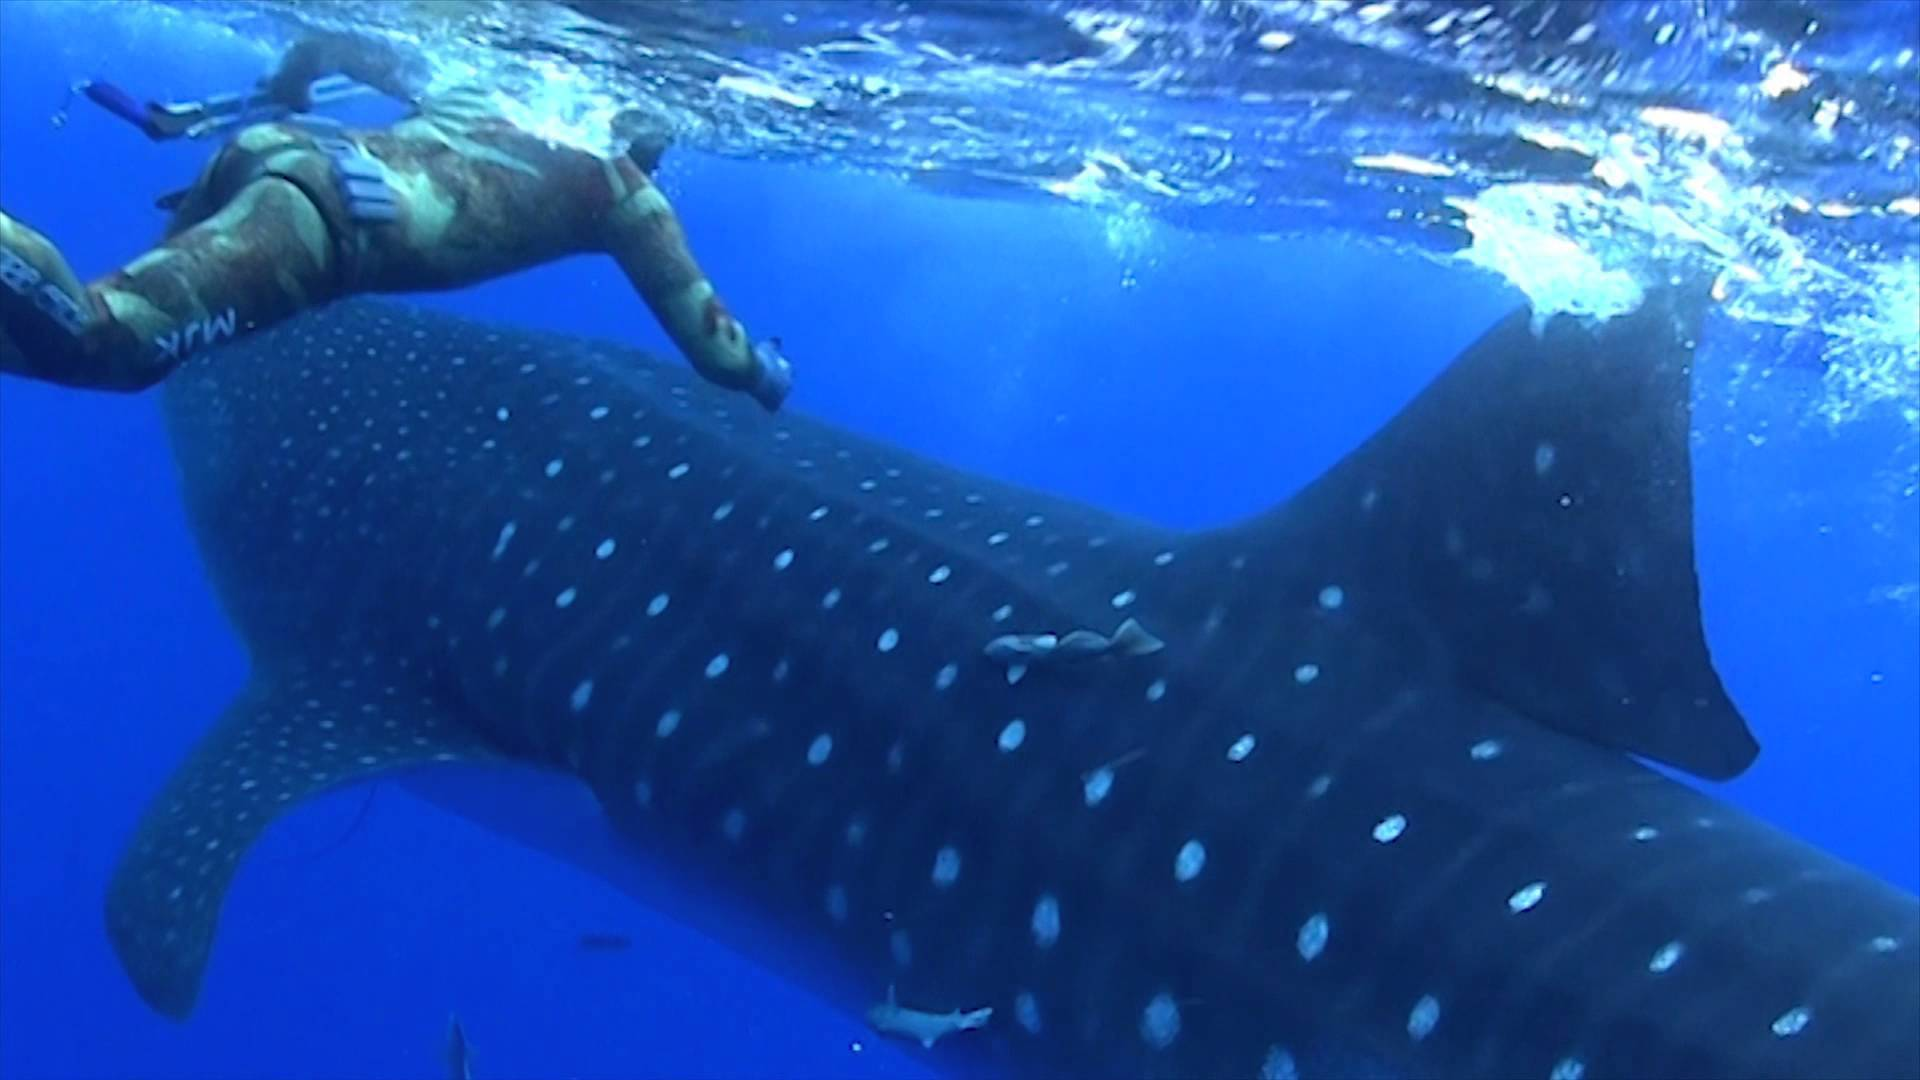 Whale sharks an introduction to the largest fish species on earth thecheapjerseys Choice Image